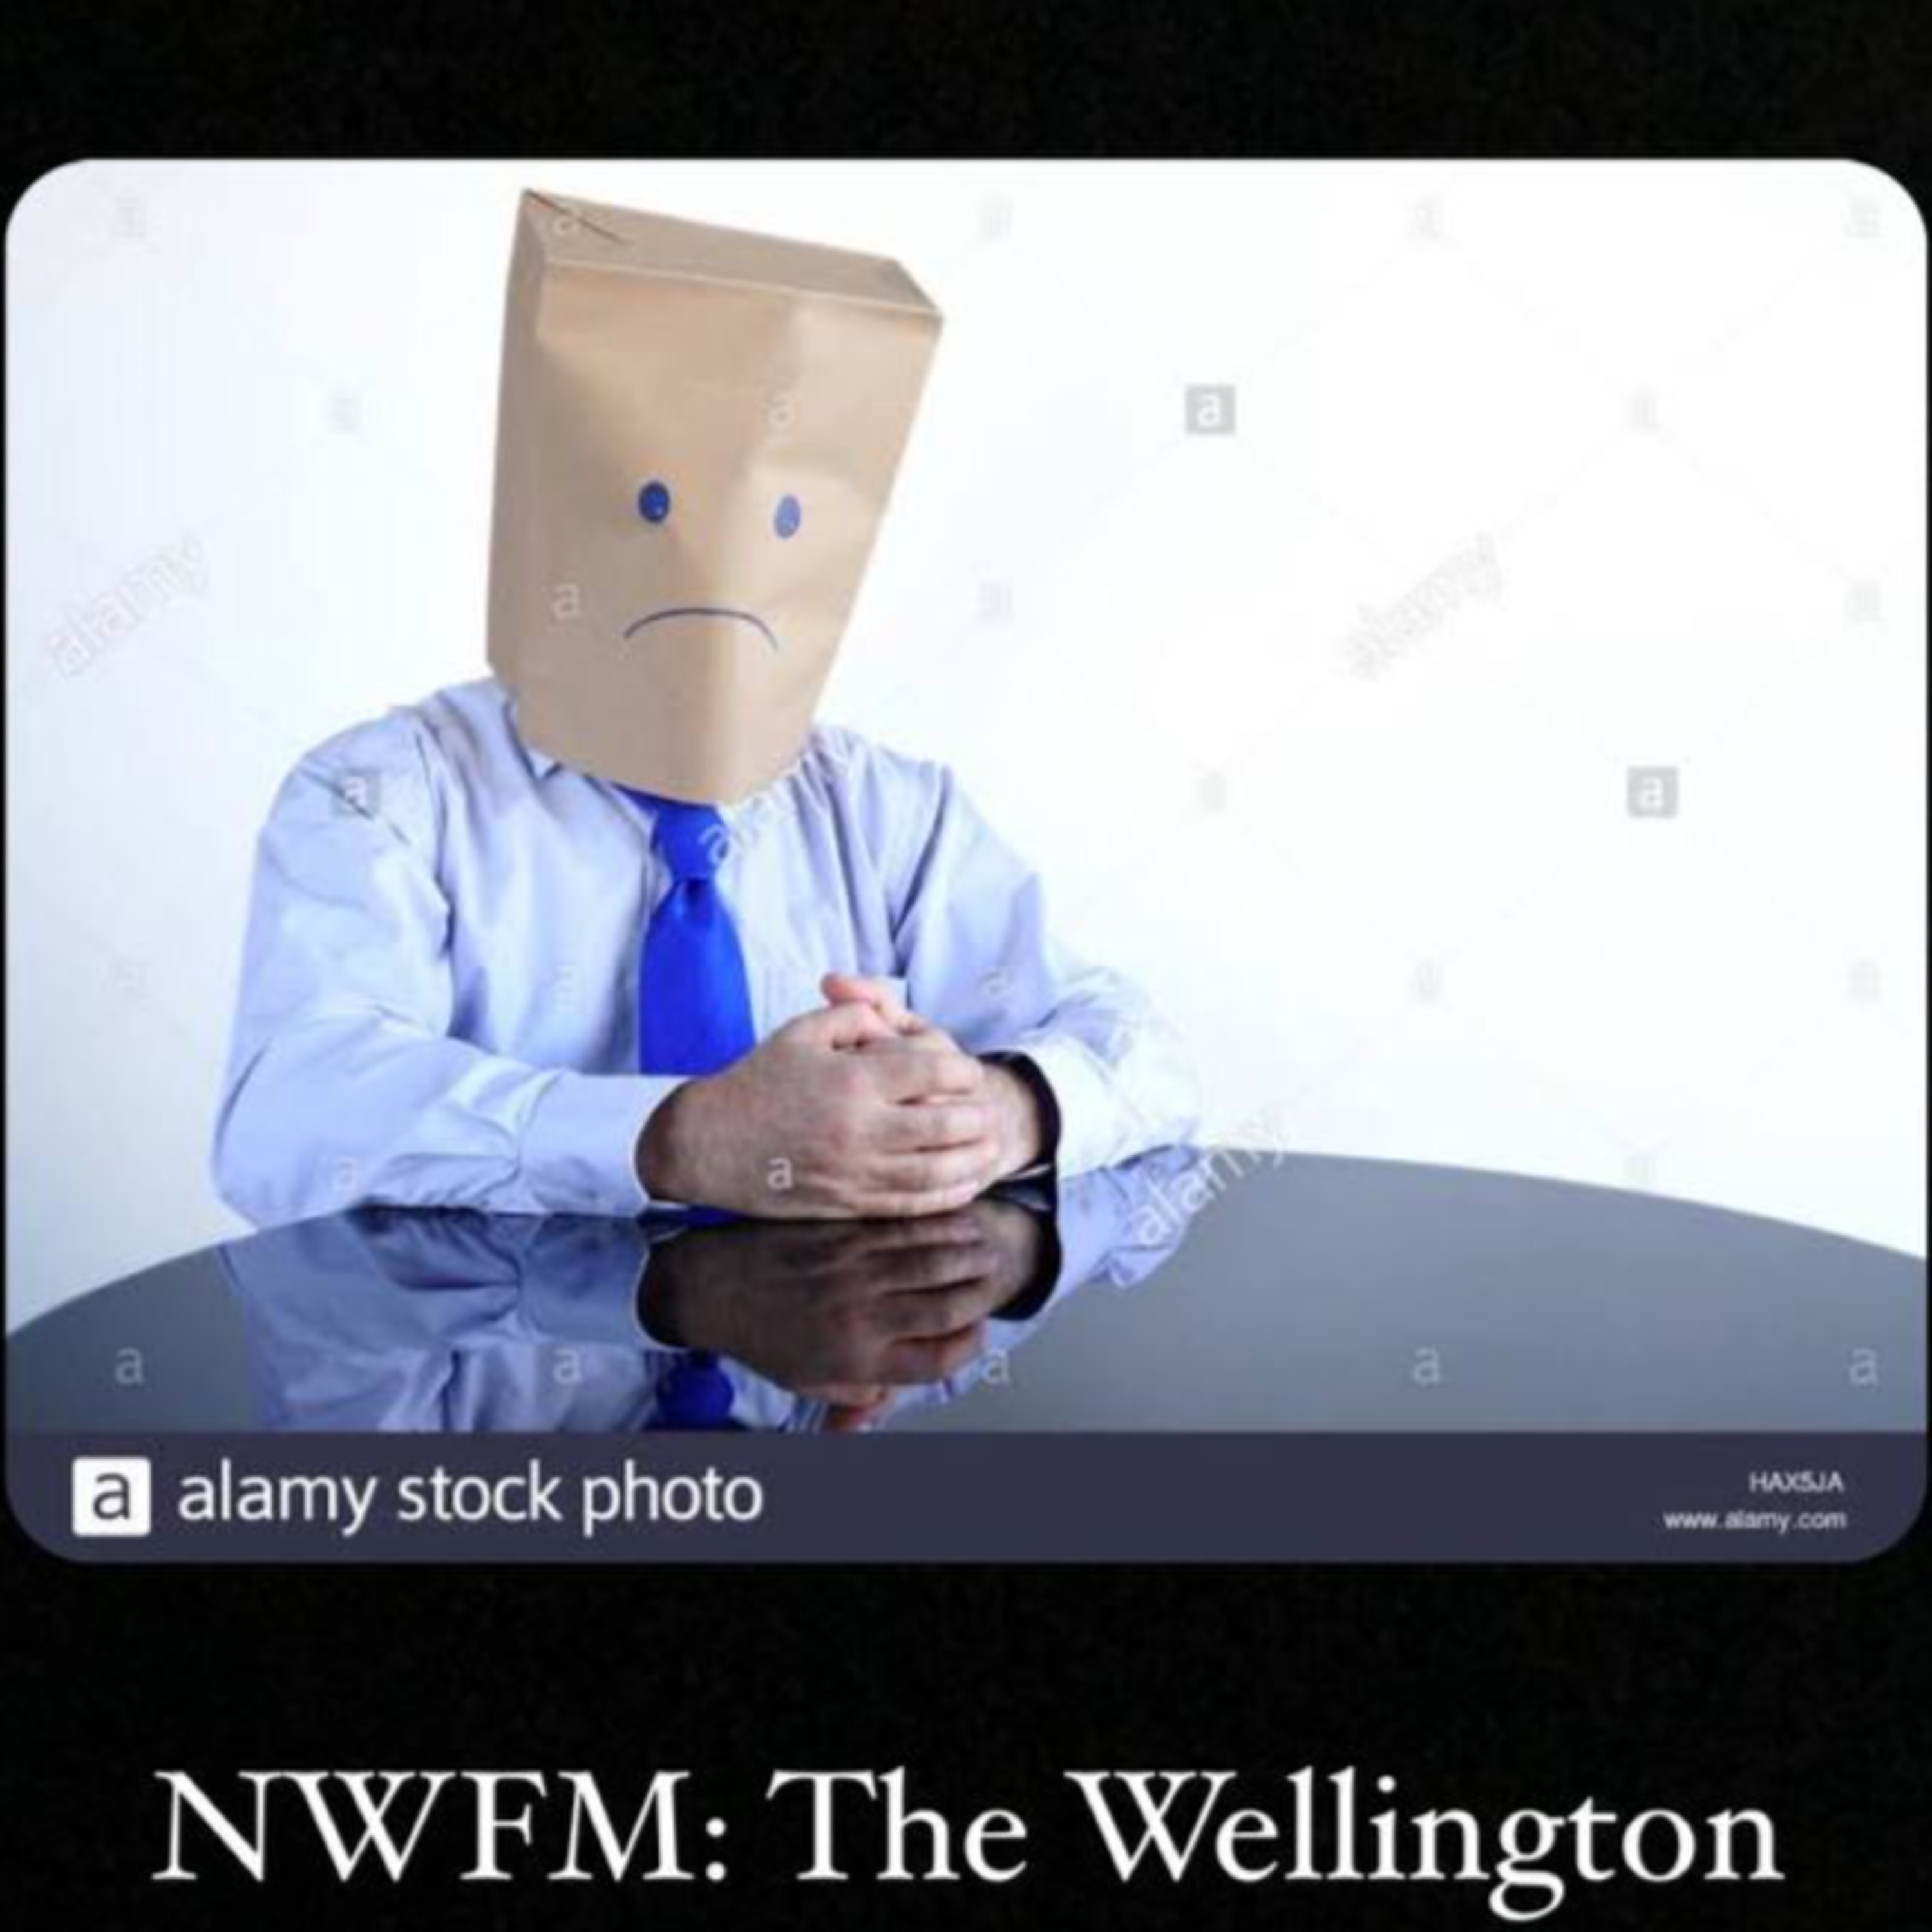 NWFM: The Wellington